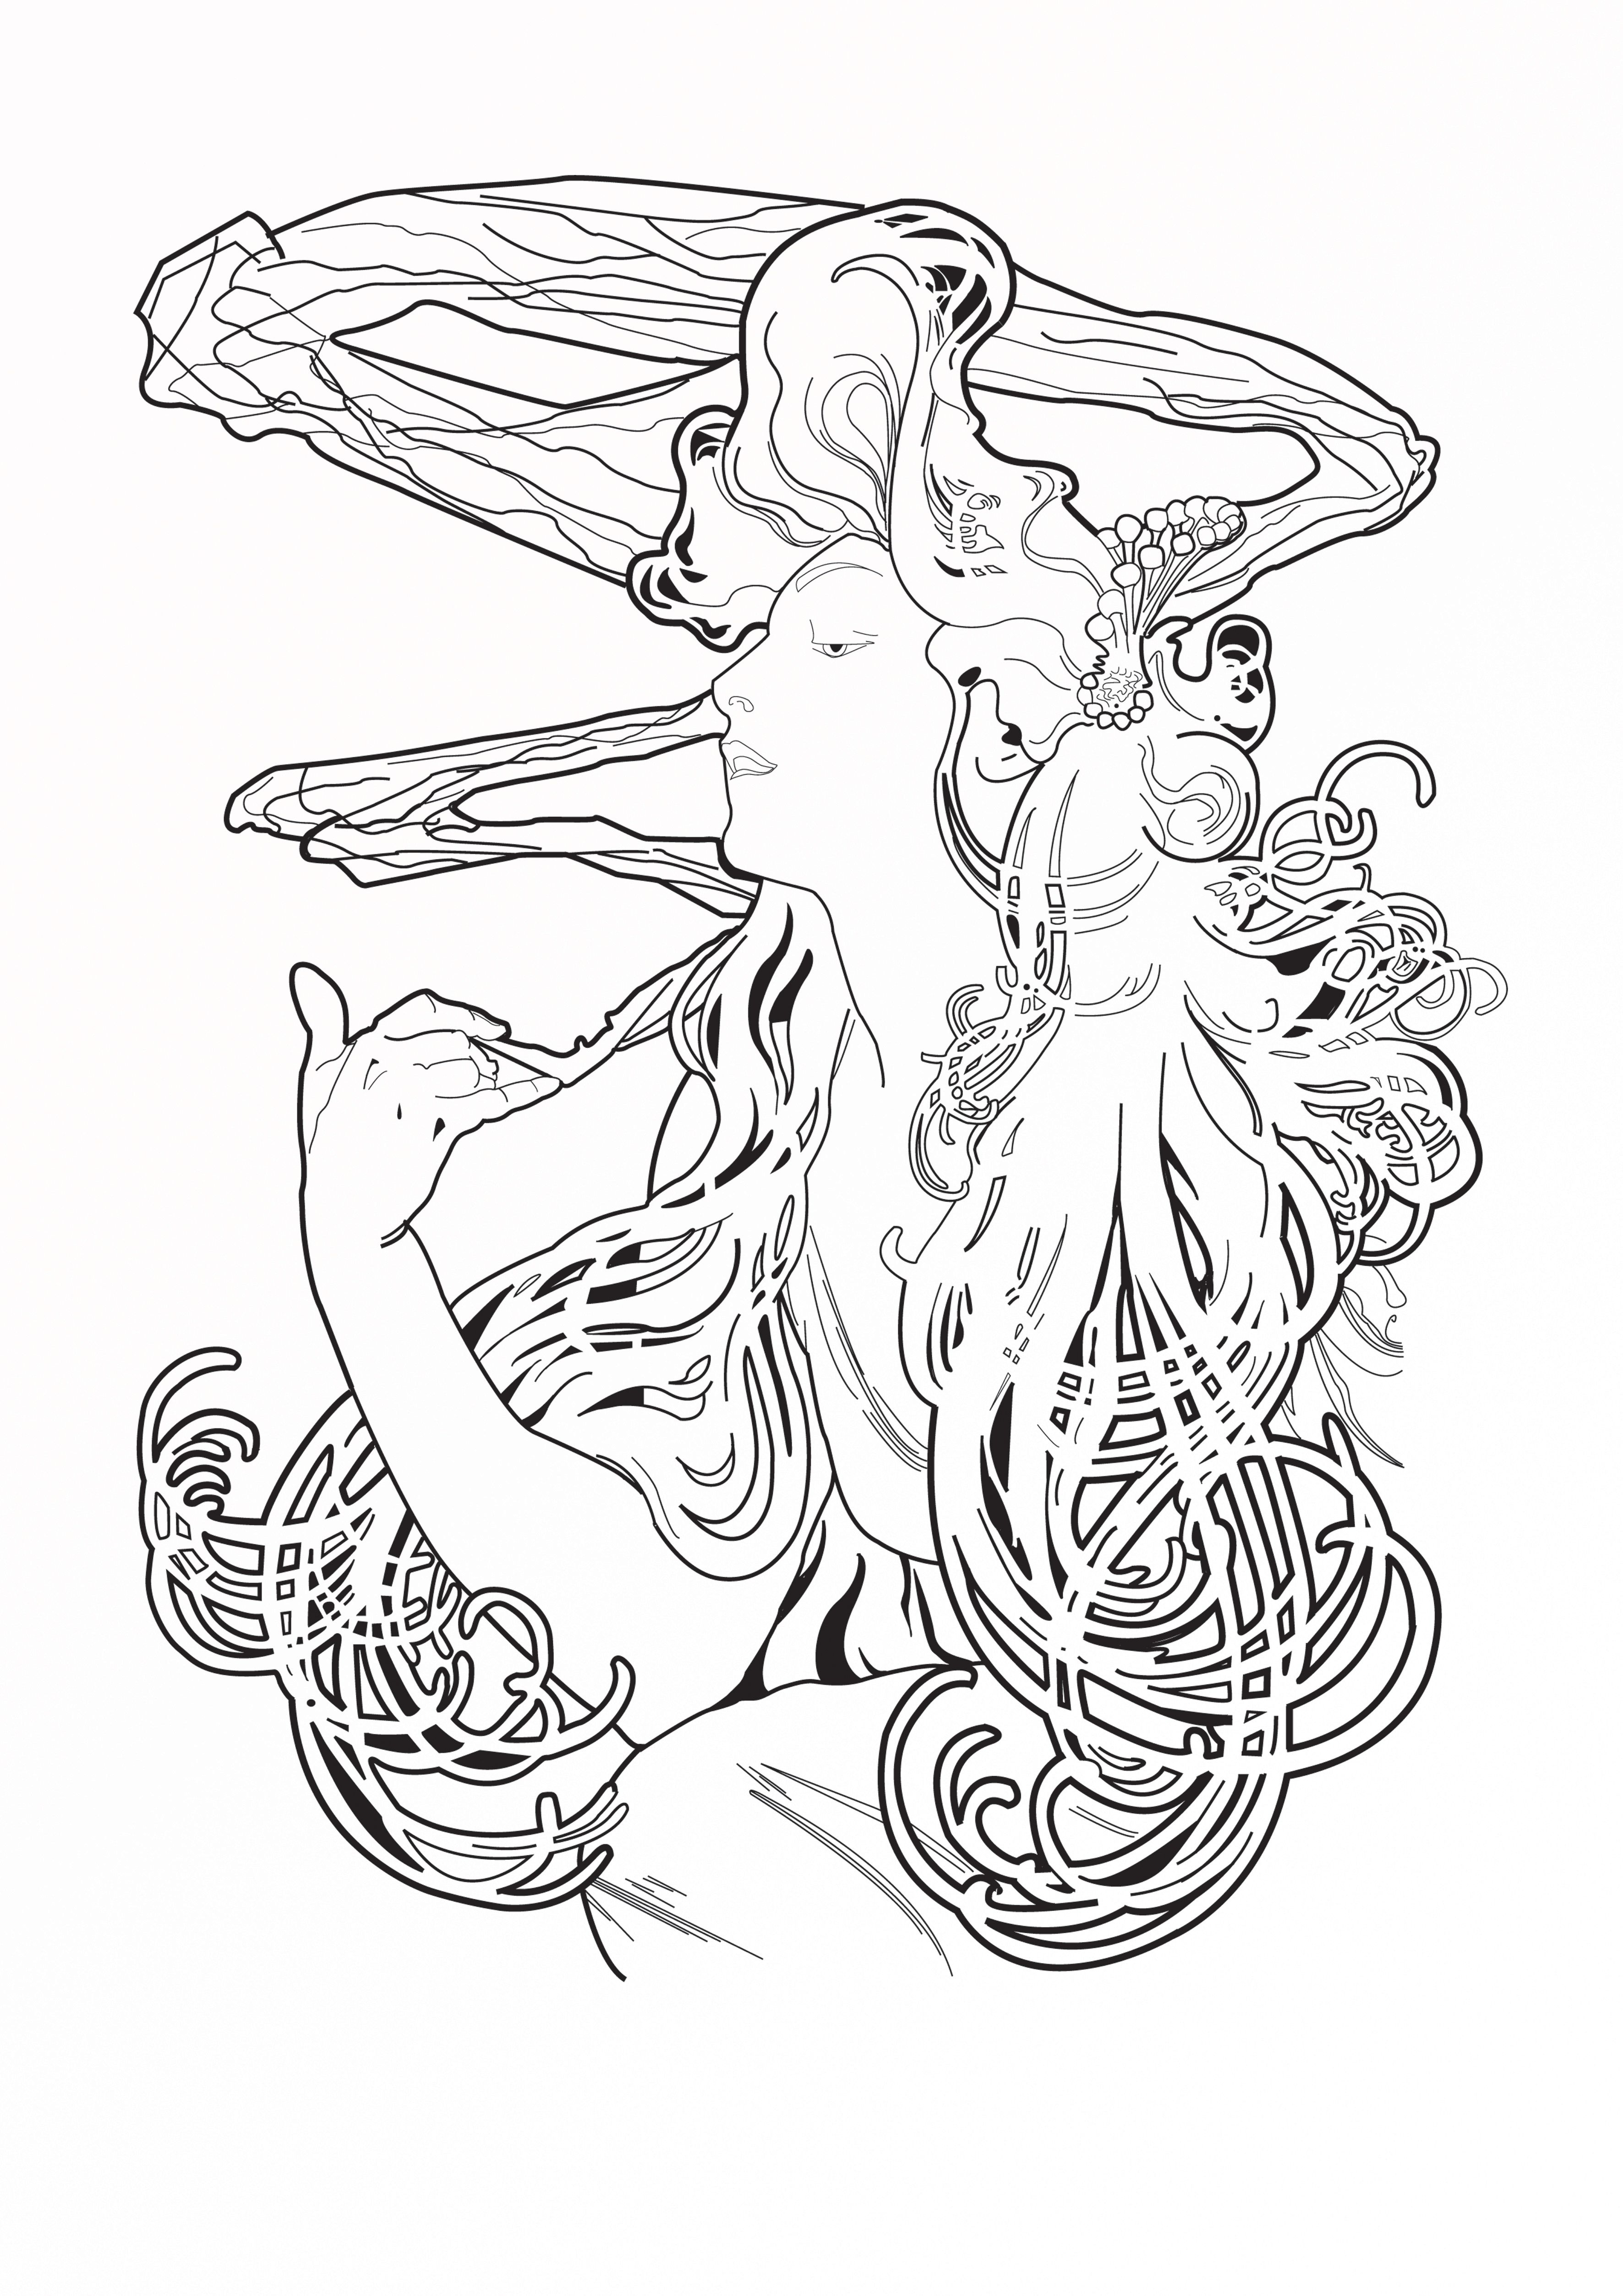 Google Image Result for http://www.deviantart.com/download/95126720/omaggio_a_Mucha_by_llacami.jpg